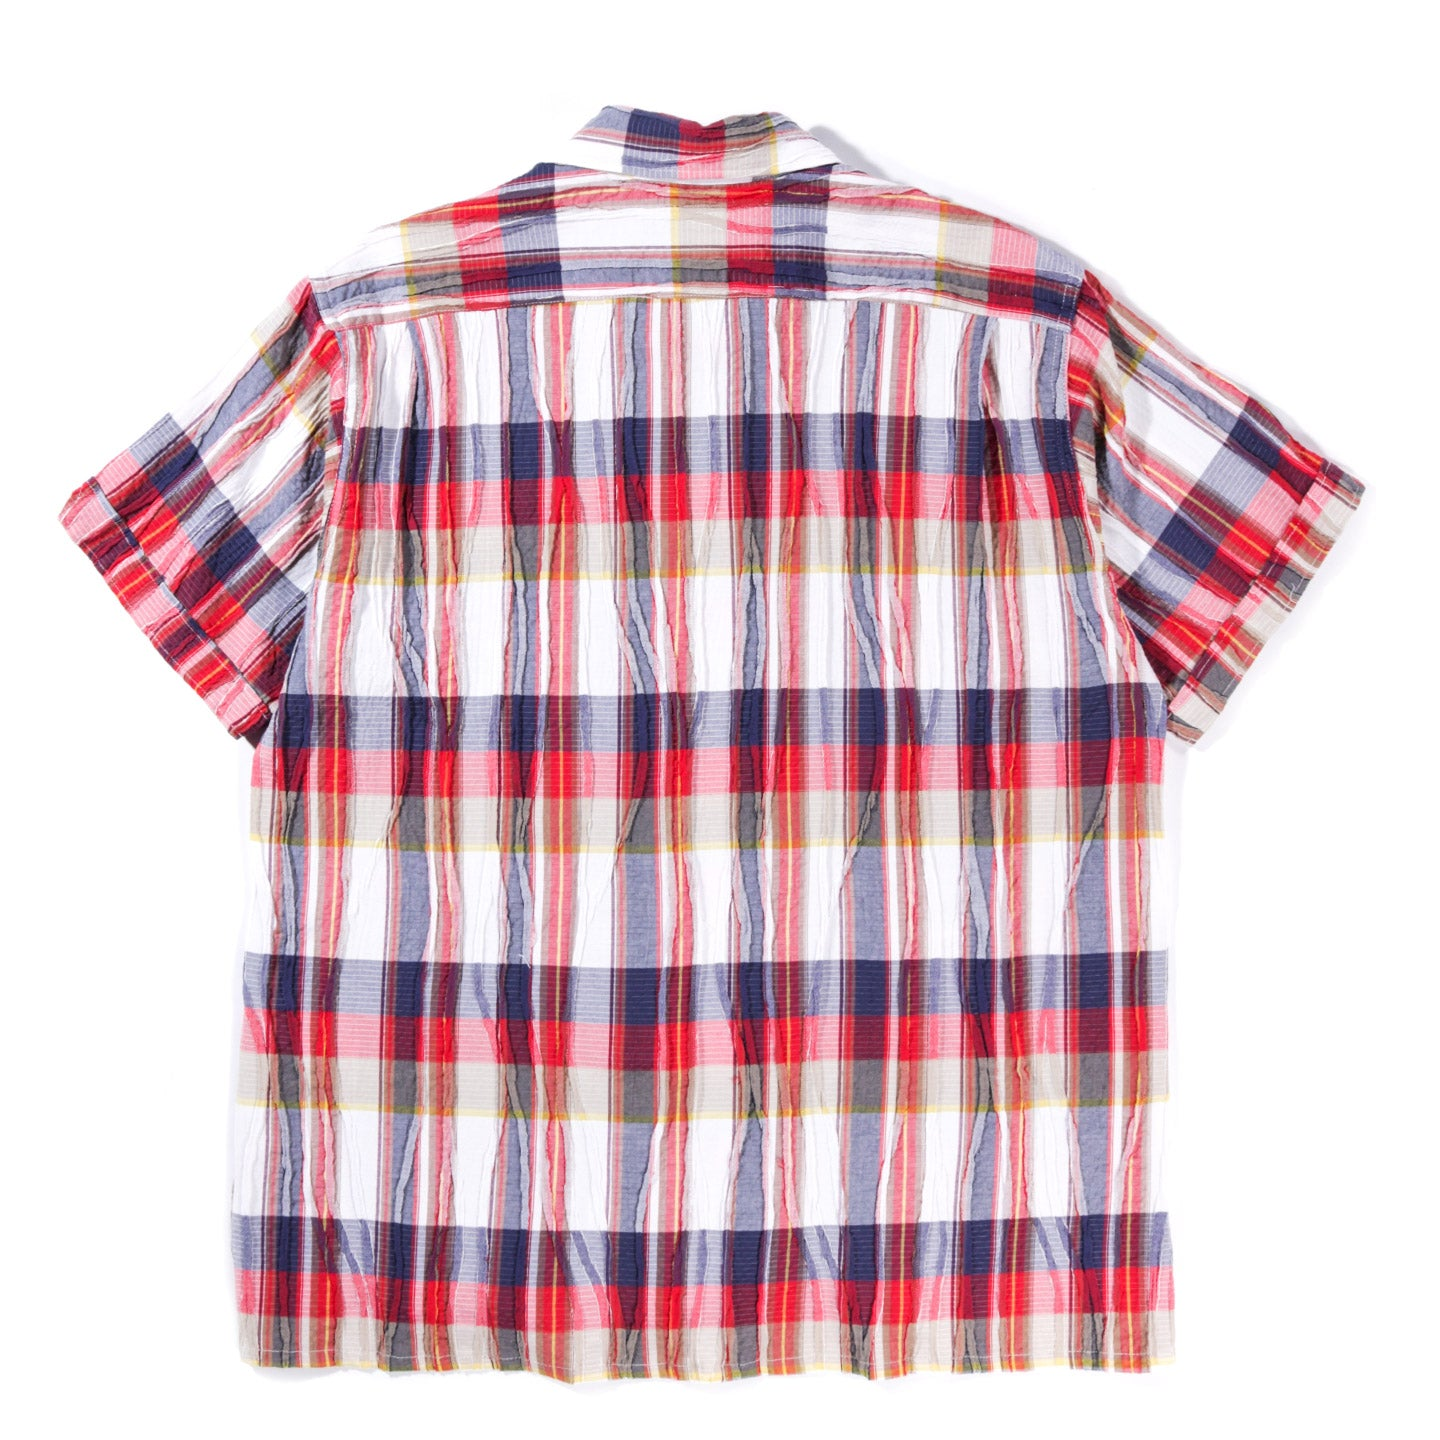 ENGINEERED GARMENTS CAMP SHIRT RED WHITE COTTON CREPE CHECK